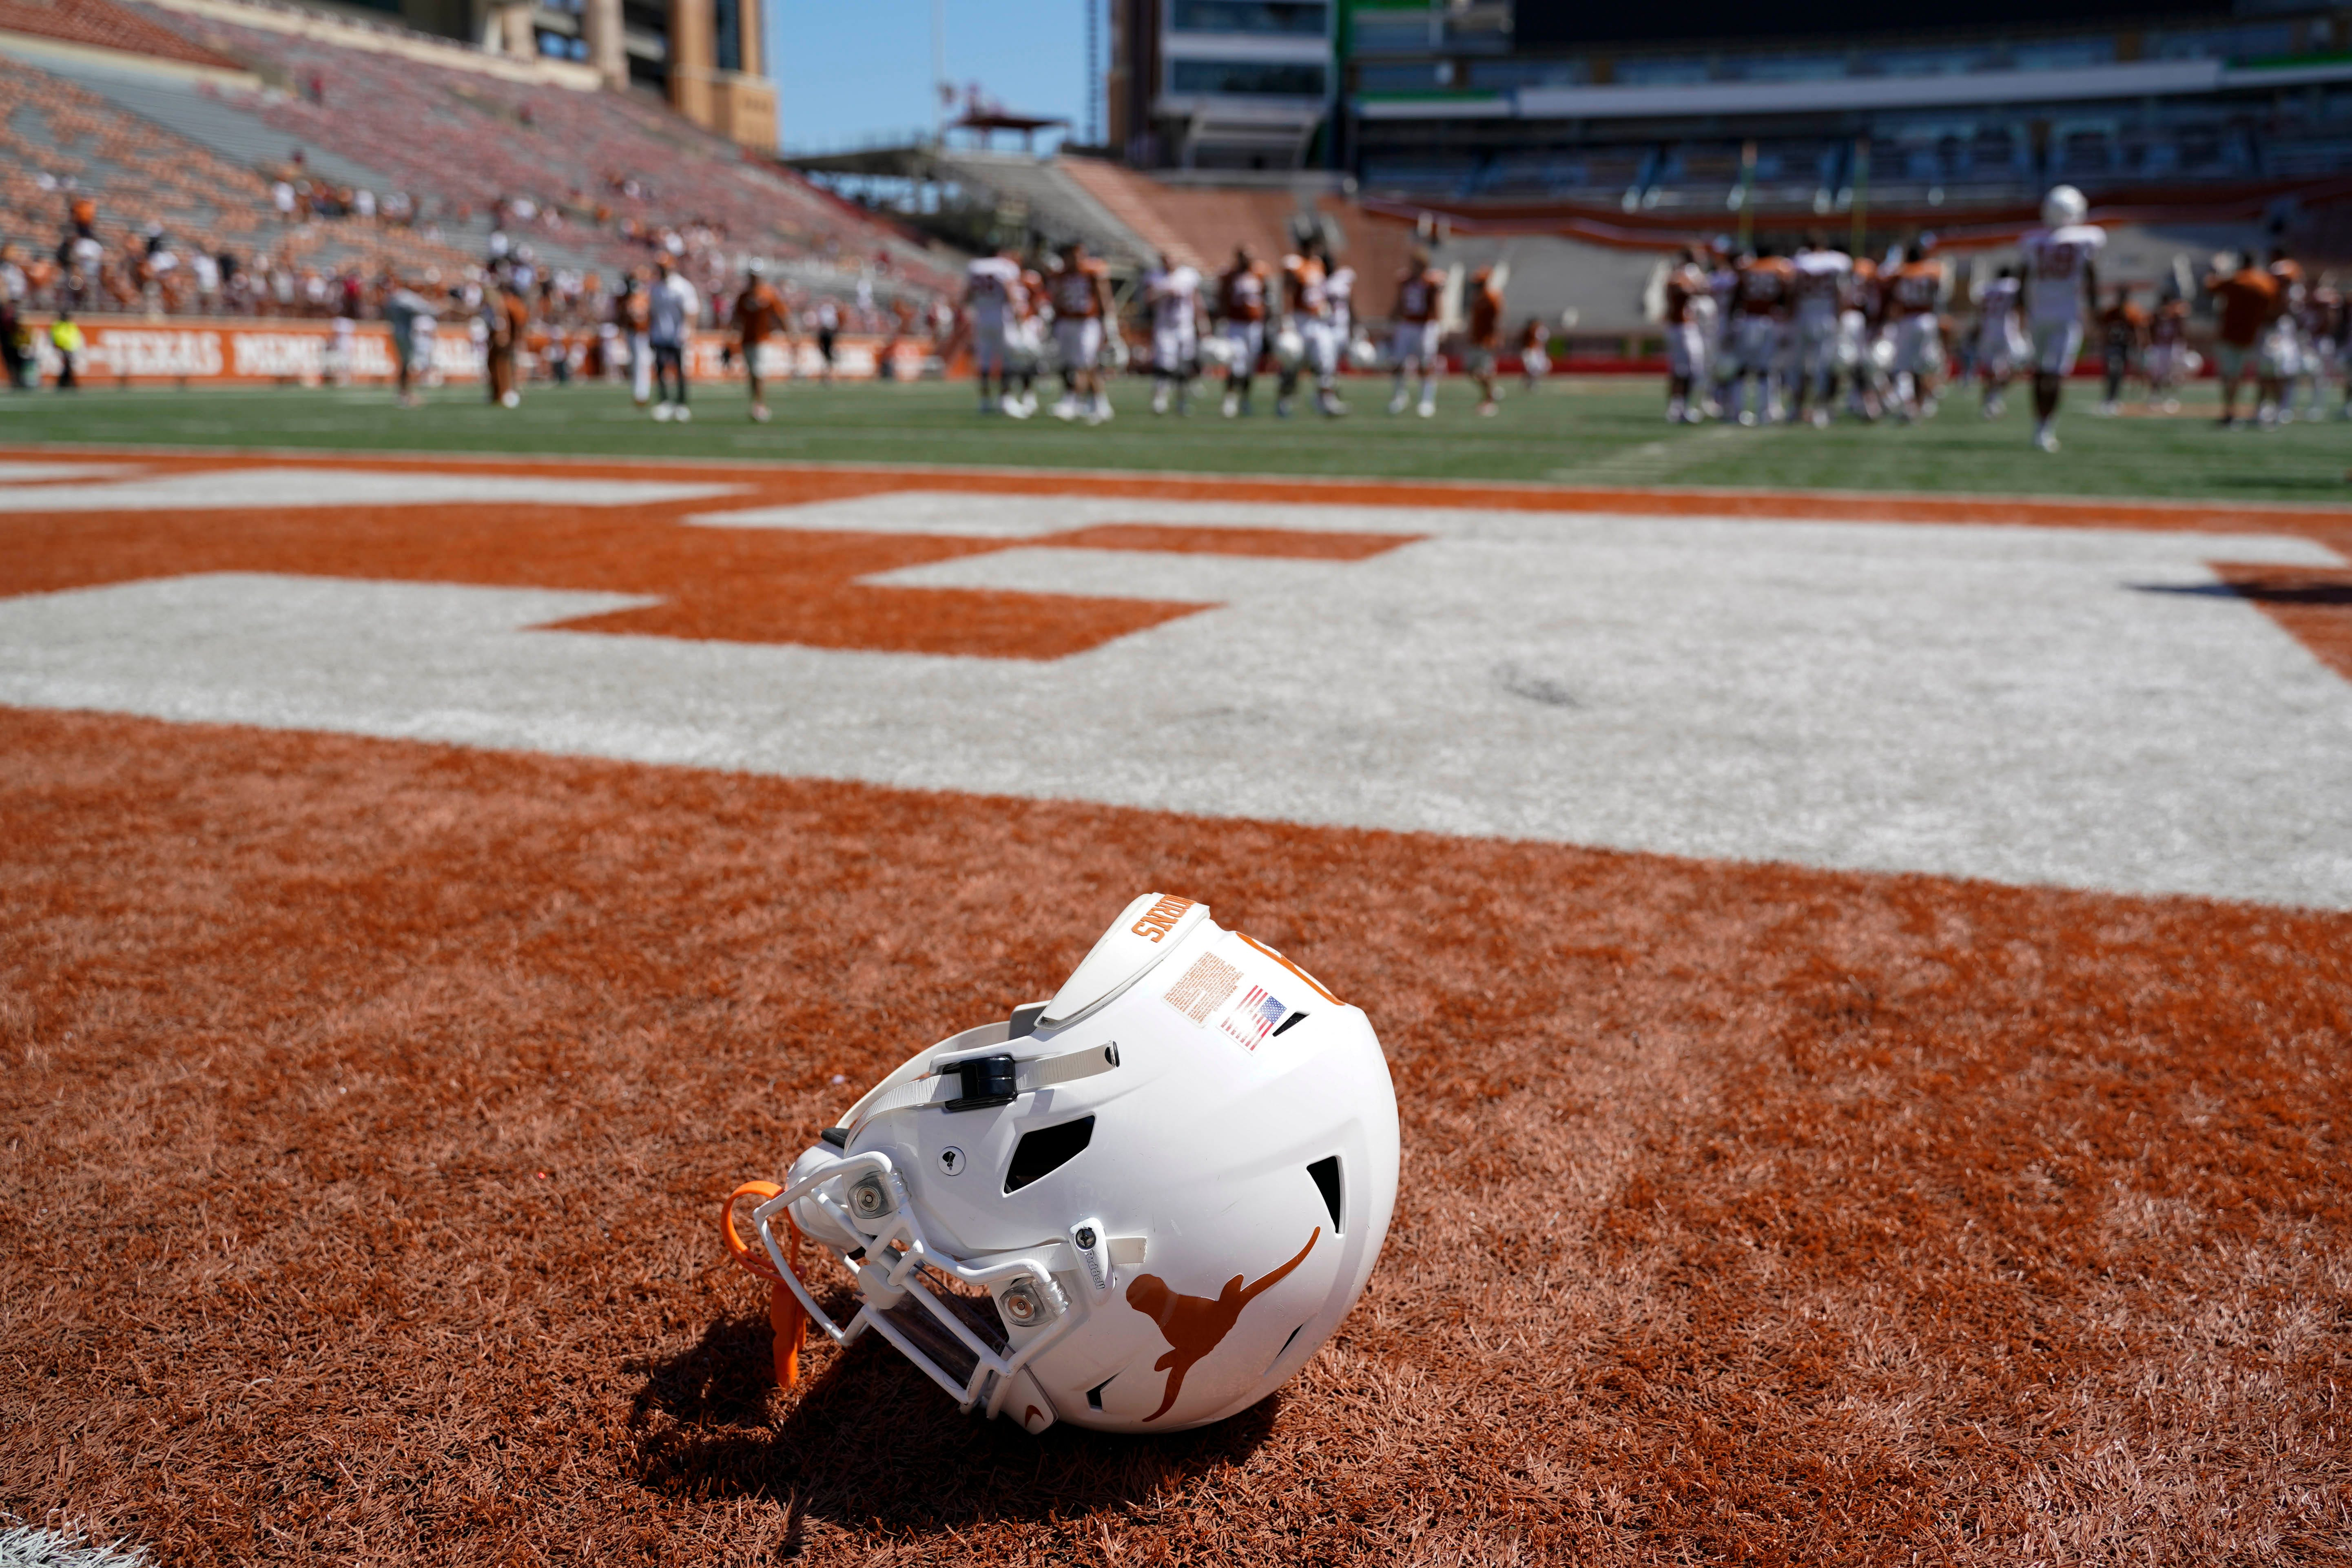 Texas House approves name, image and likeness bill for college athletes by overwhelming margin